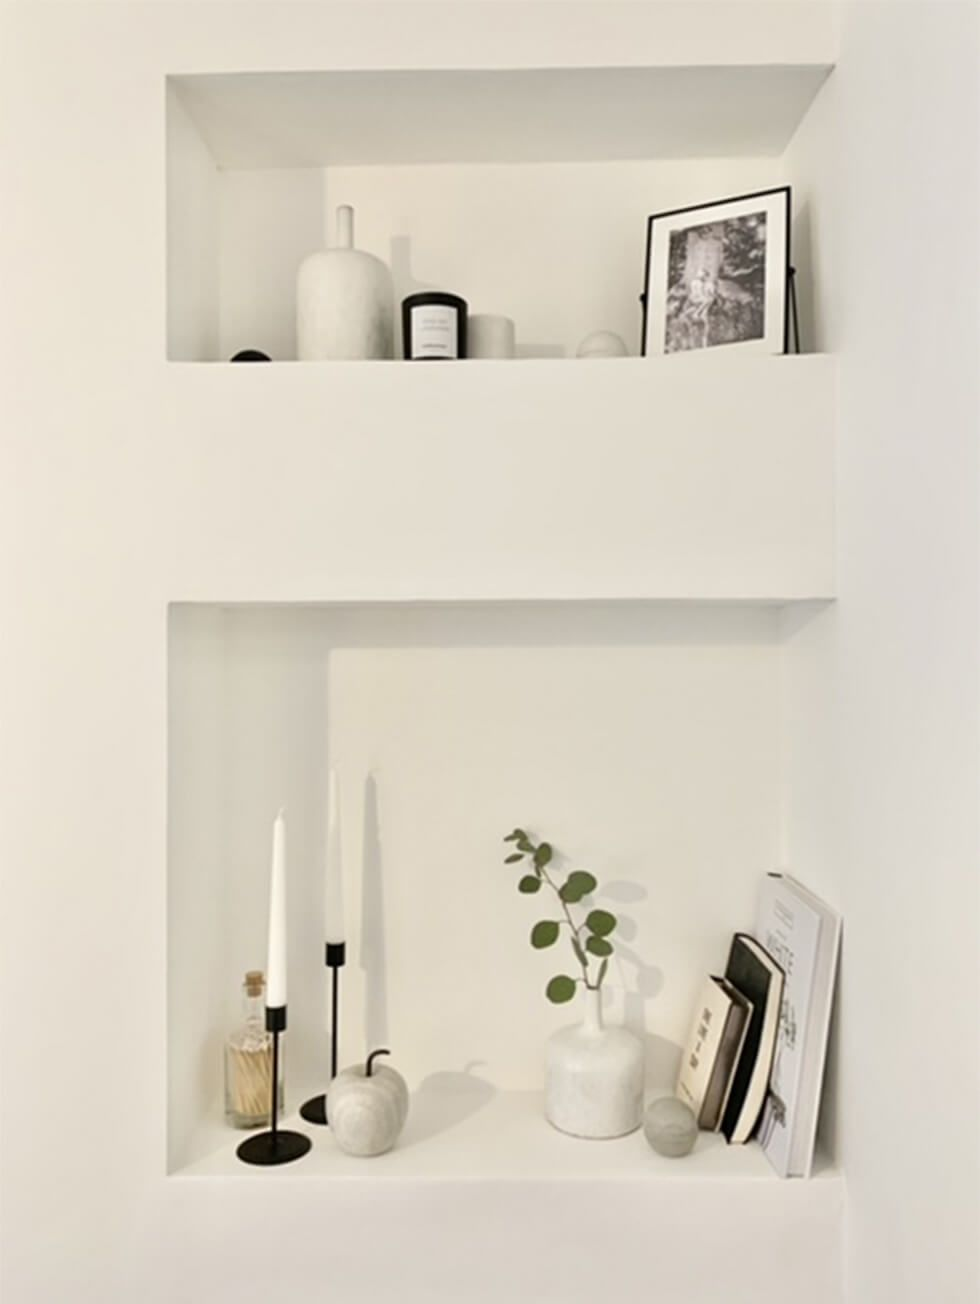 Minimalist wall niche decorated with candles, vases and books